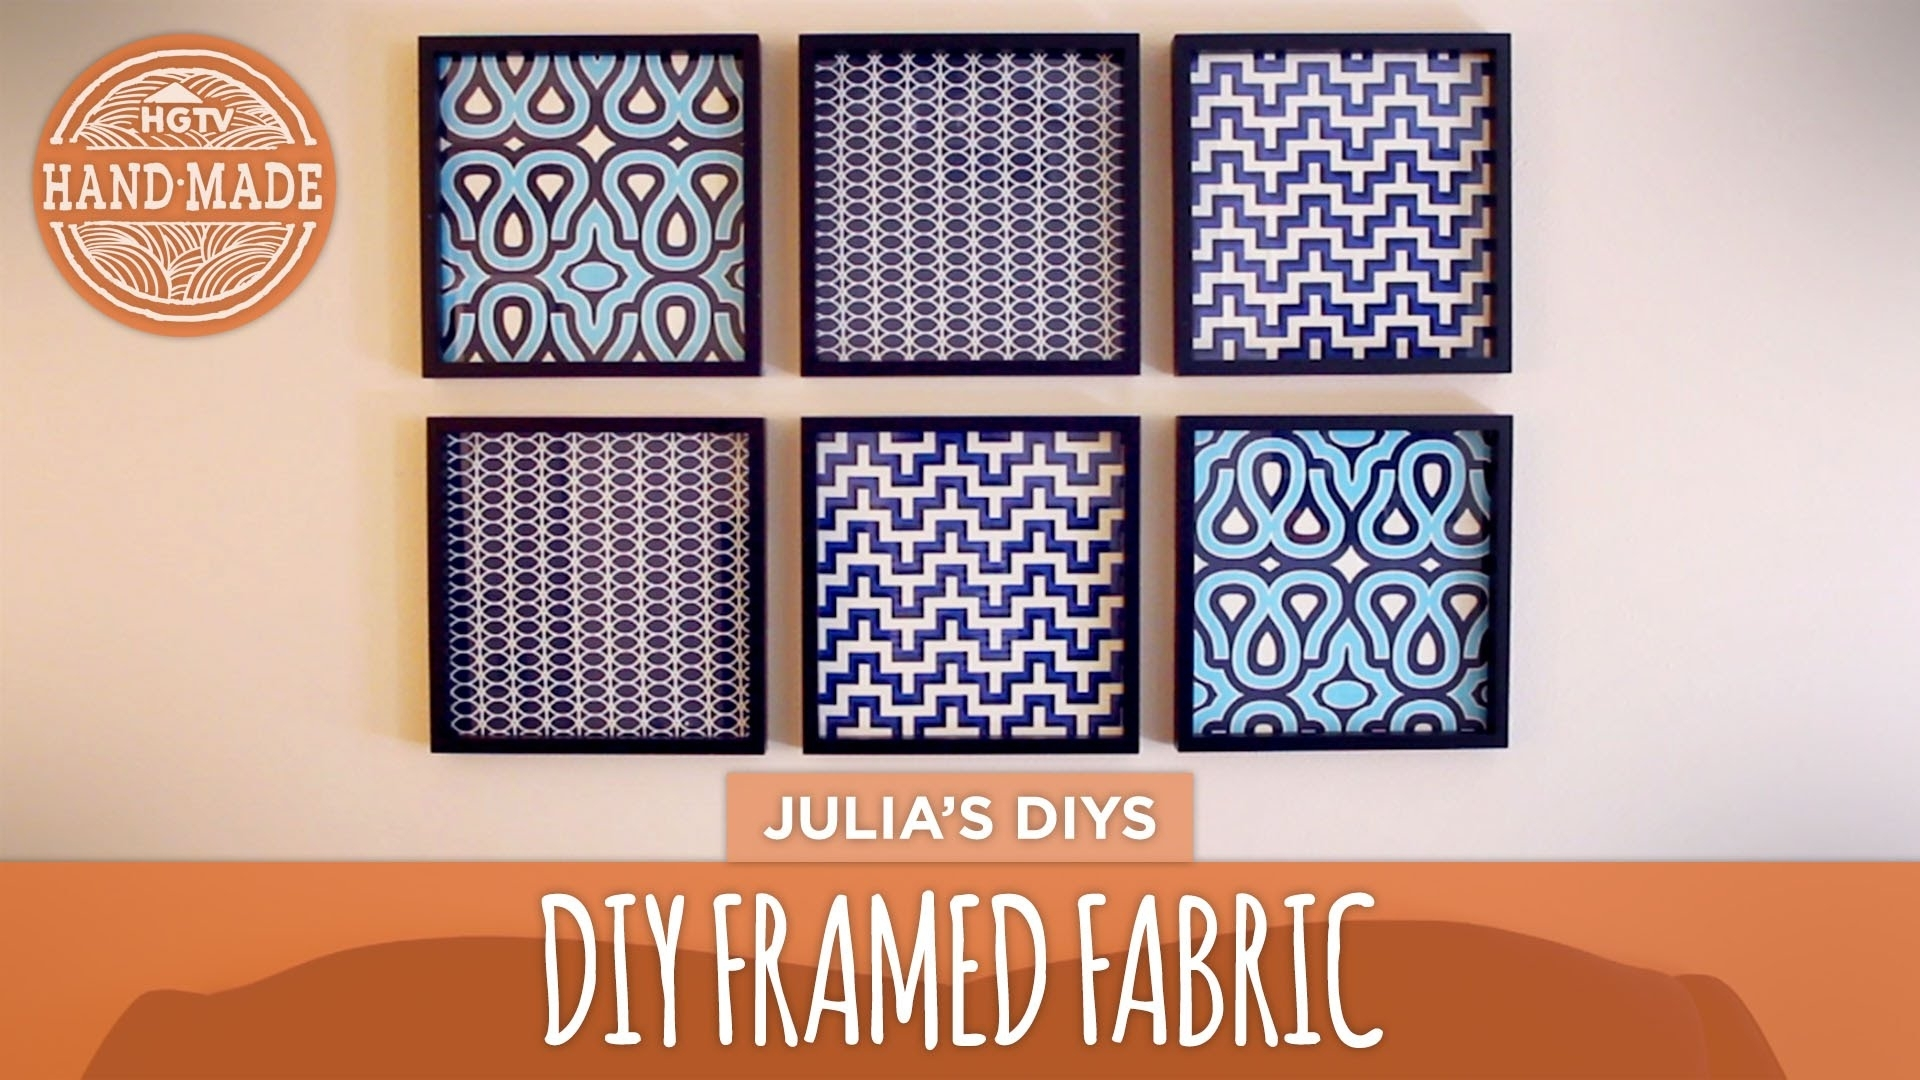 Diy Framed Fabric Gallery Wall – Hgtv Handmade – Youtube With Most Up To Date Fabric Wall Accents (View 9 of 15)